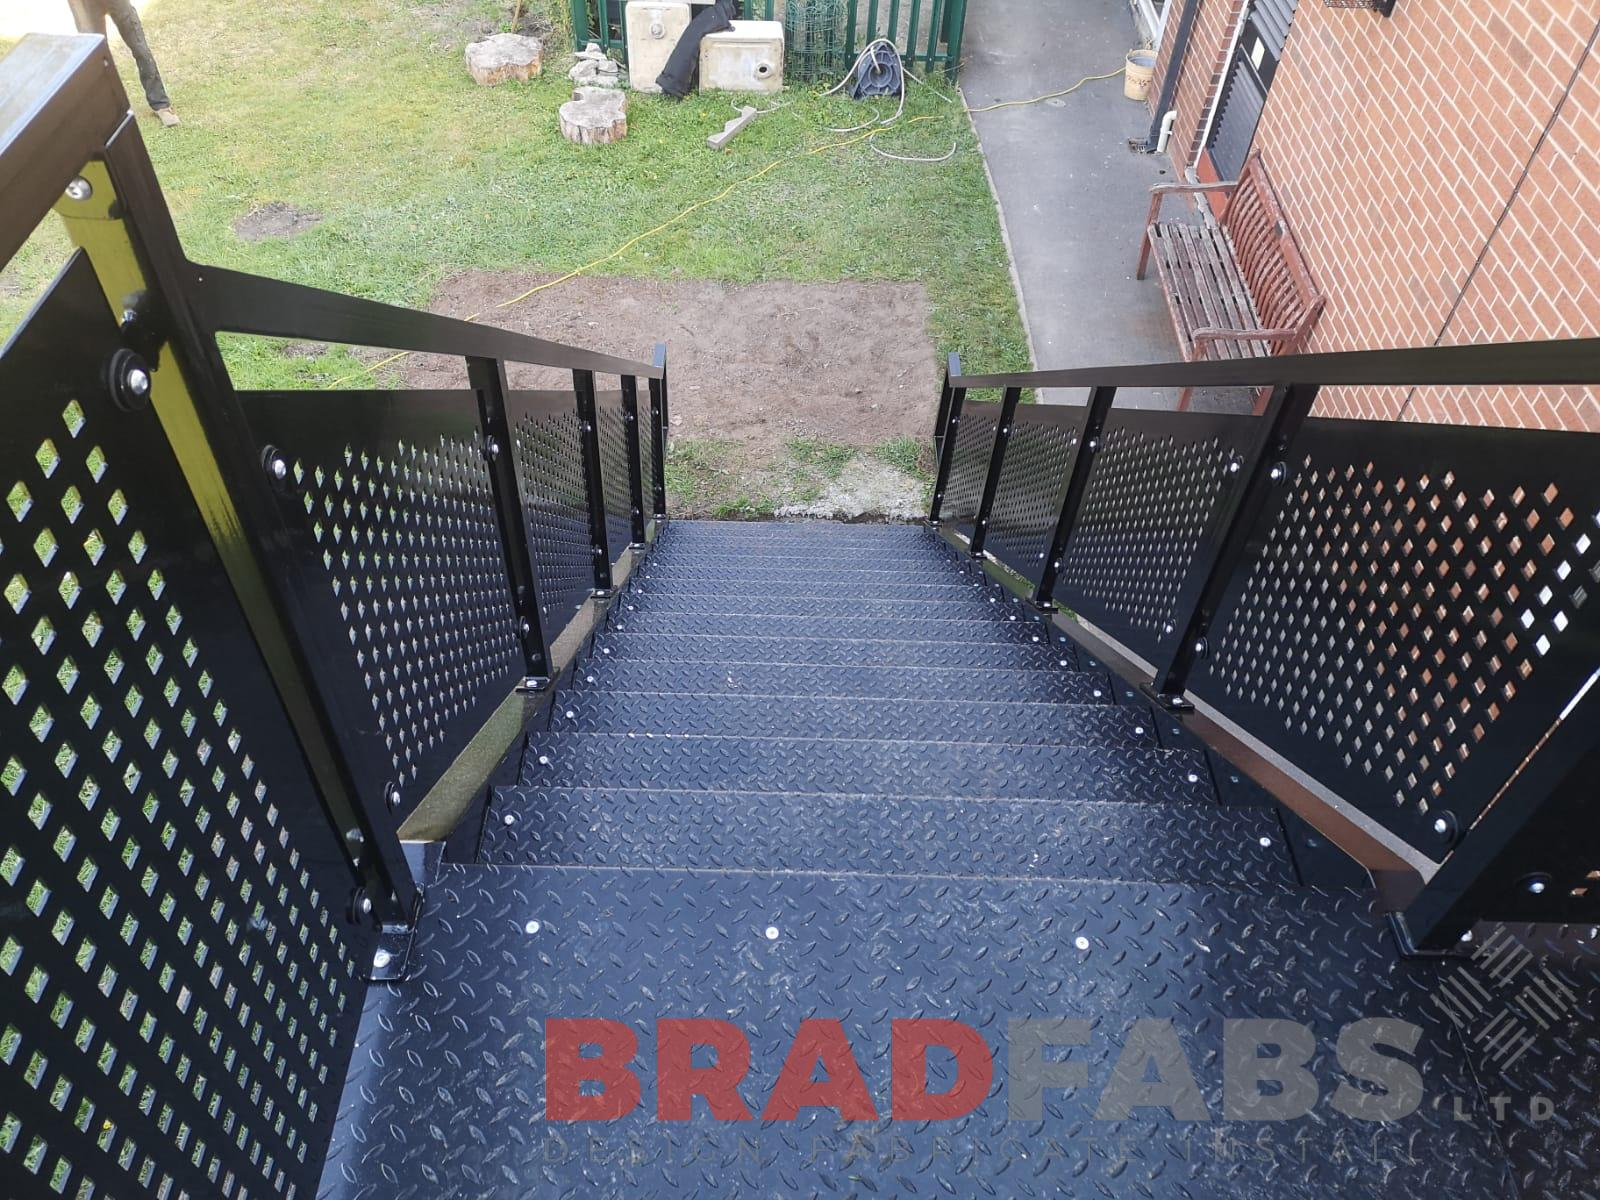 Vioew from the top of the straight fire escape manufactured in mild steel, galvanised and powder coated black with perforated balustrade and compete with durbar open treads by Bradfabs